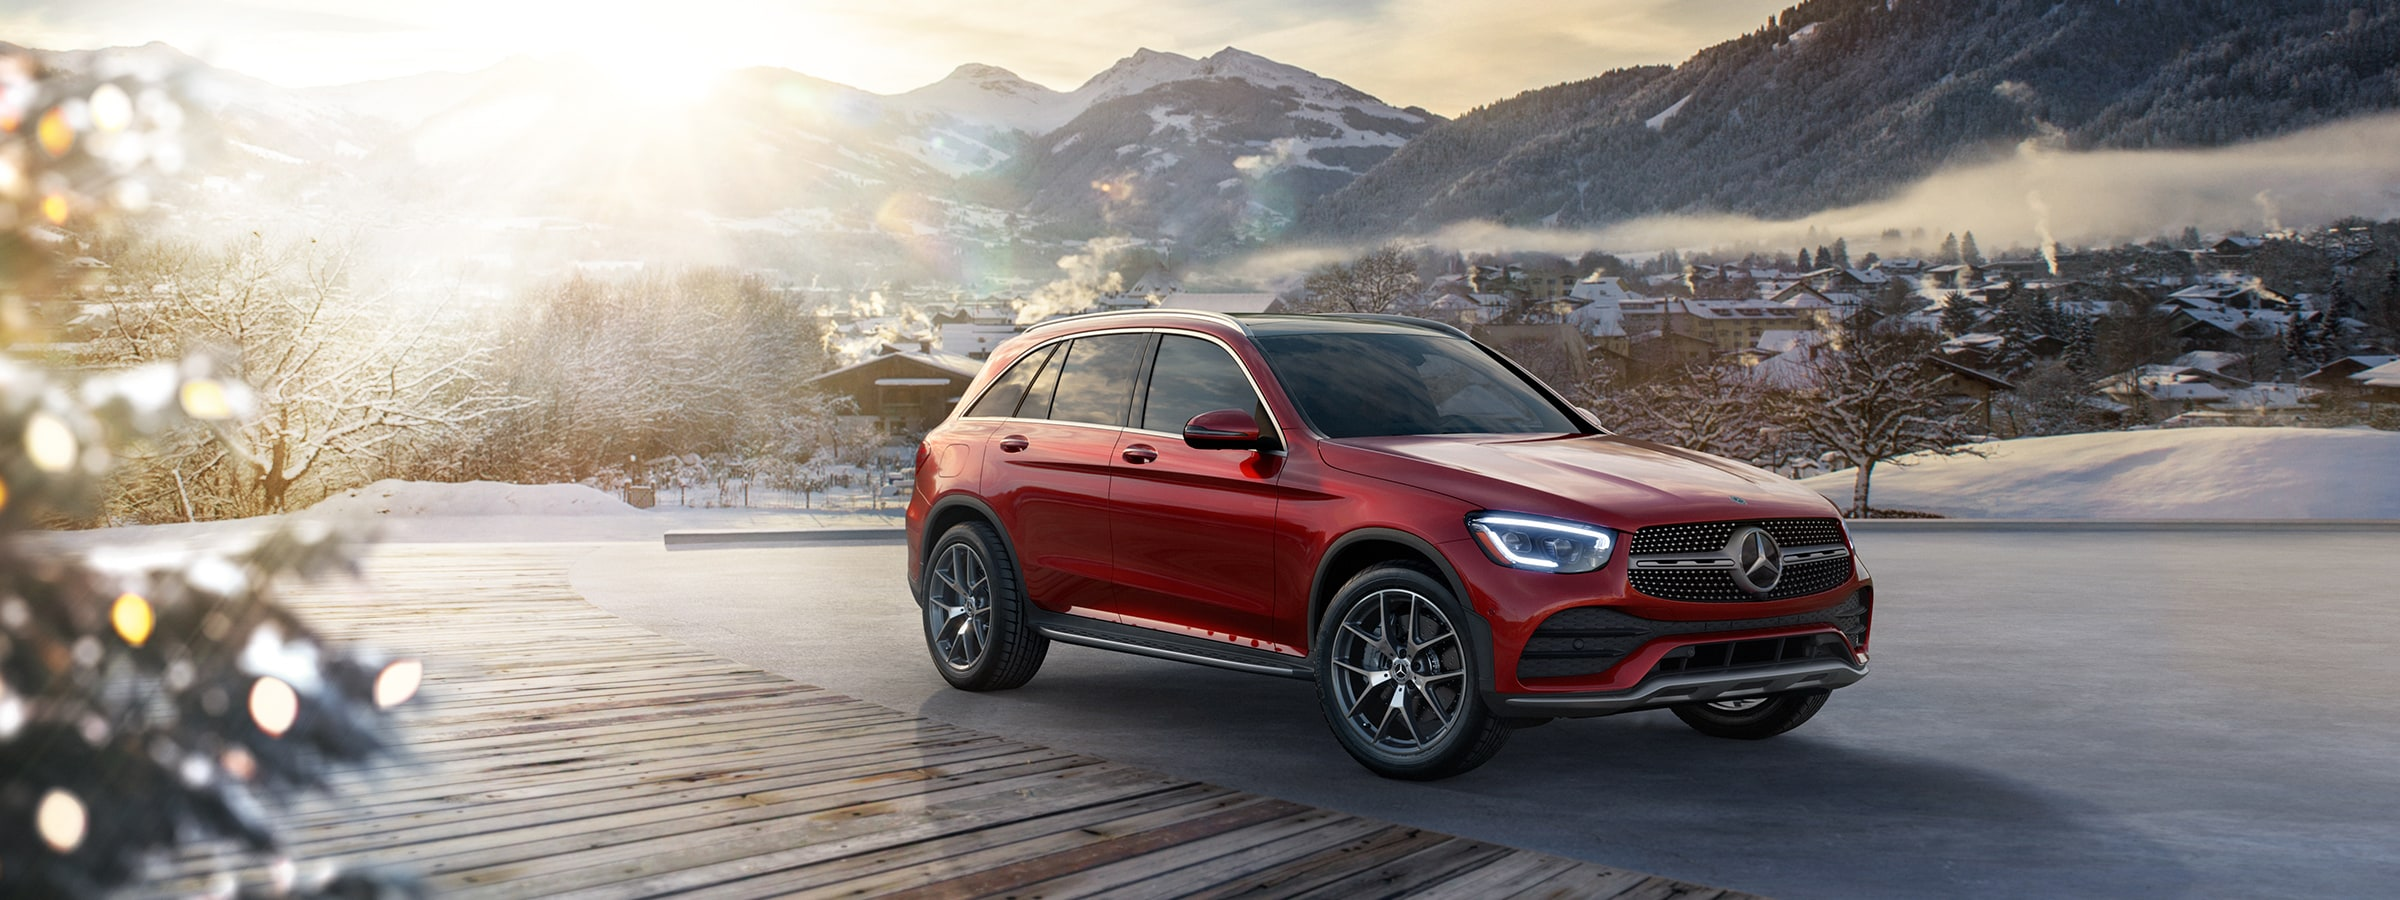 Mercedes-Benz GLC - Image